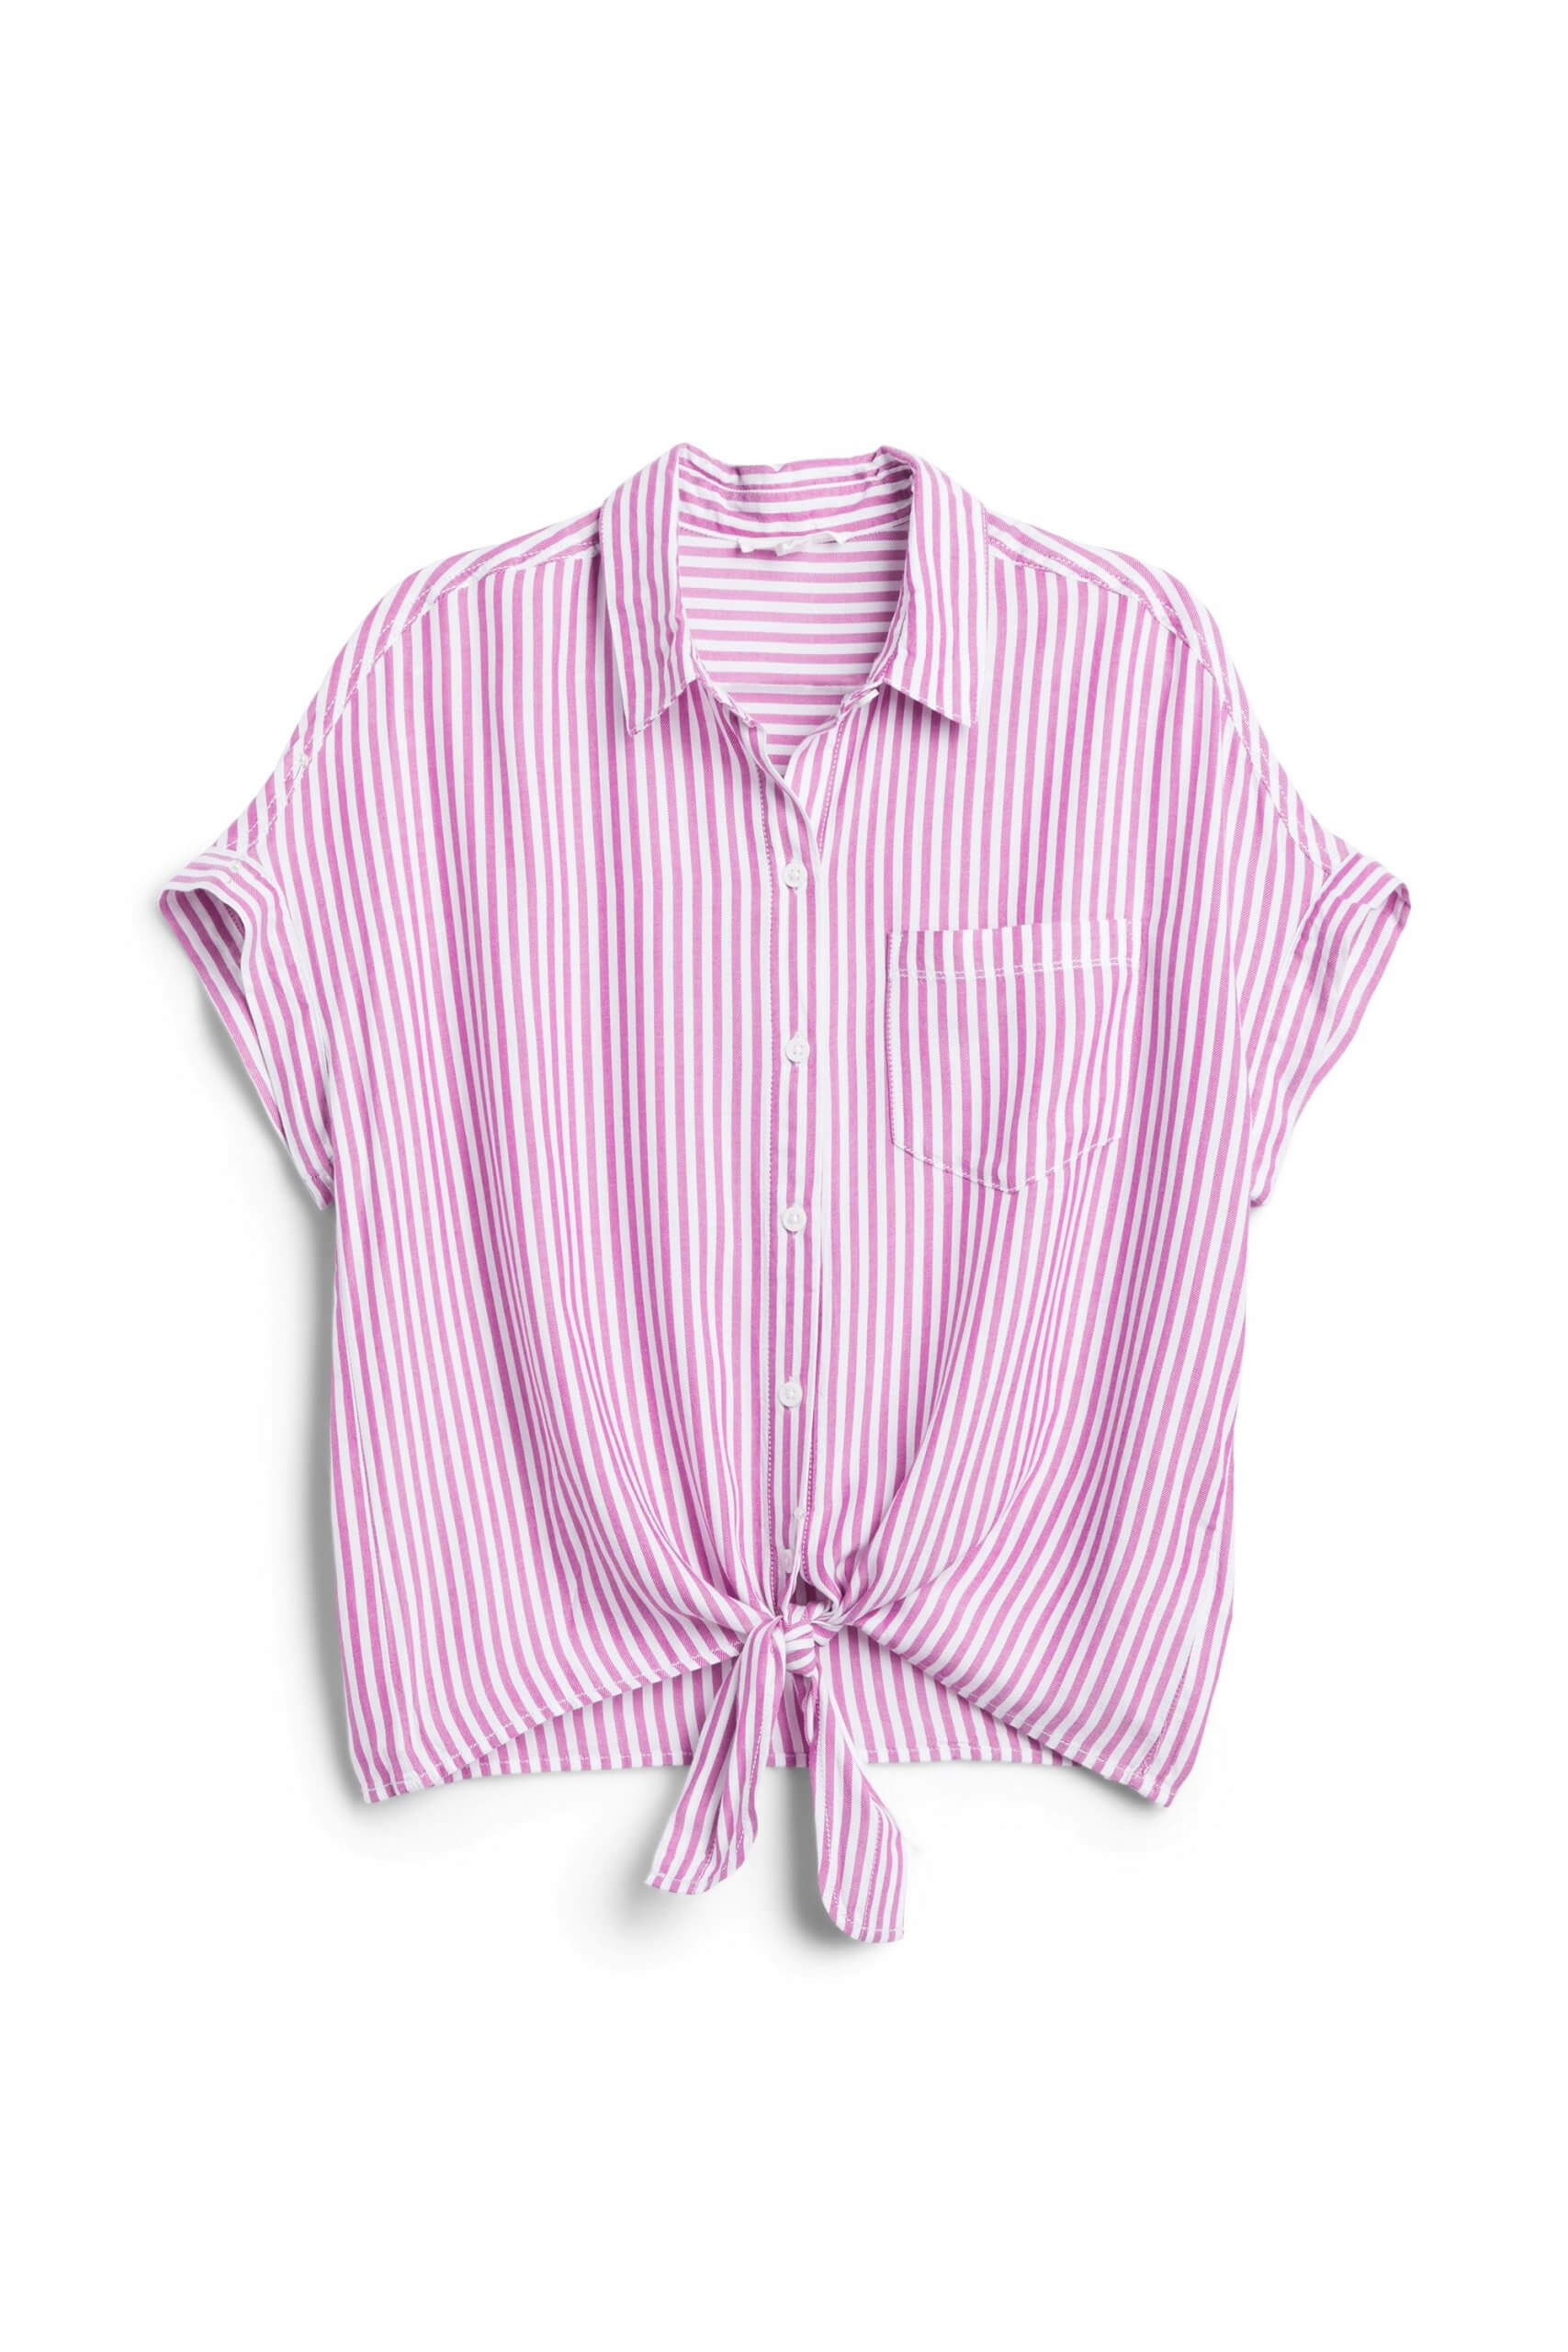 Stitch Fix Women's pink and white striped button-down shirt with tie-front detail.